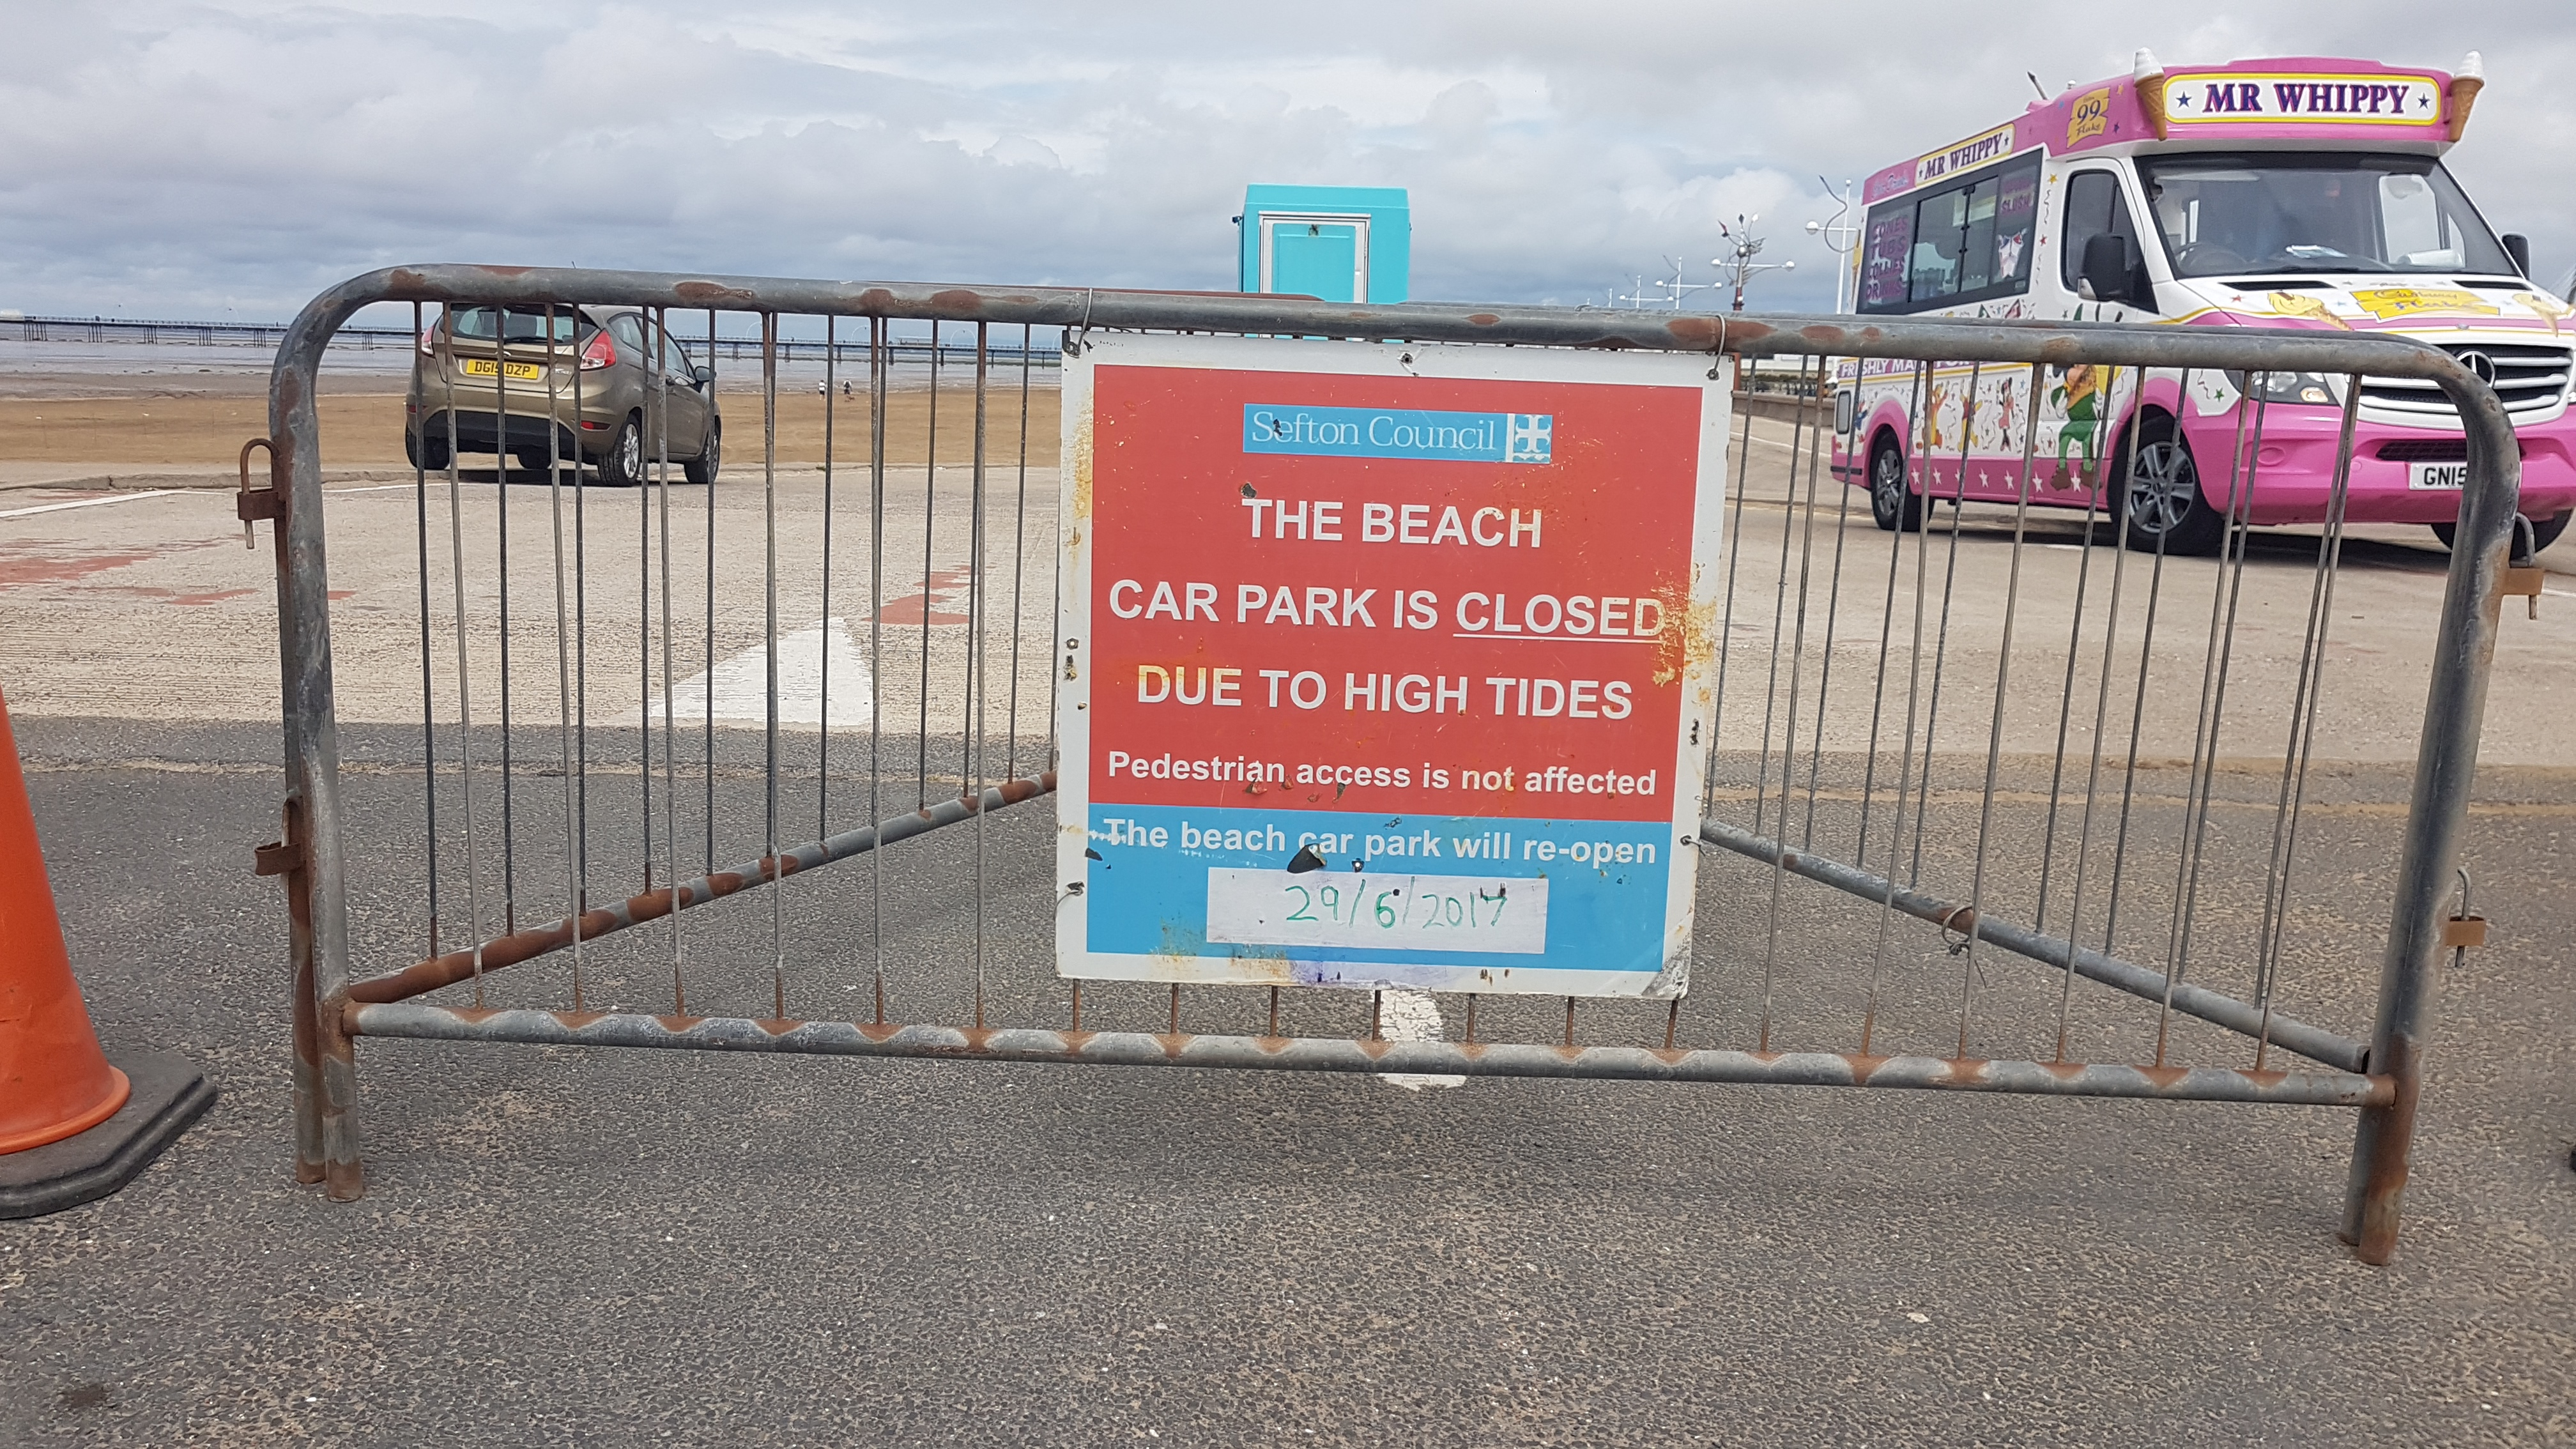 Southport's main beach will be closed to vehicles for one week until 29th June.This is due to high tides making parking impossible.